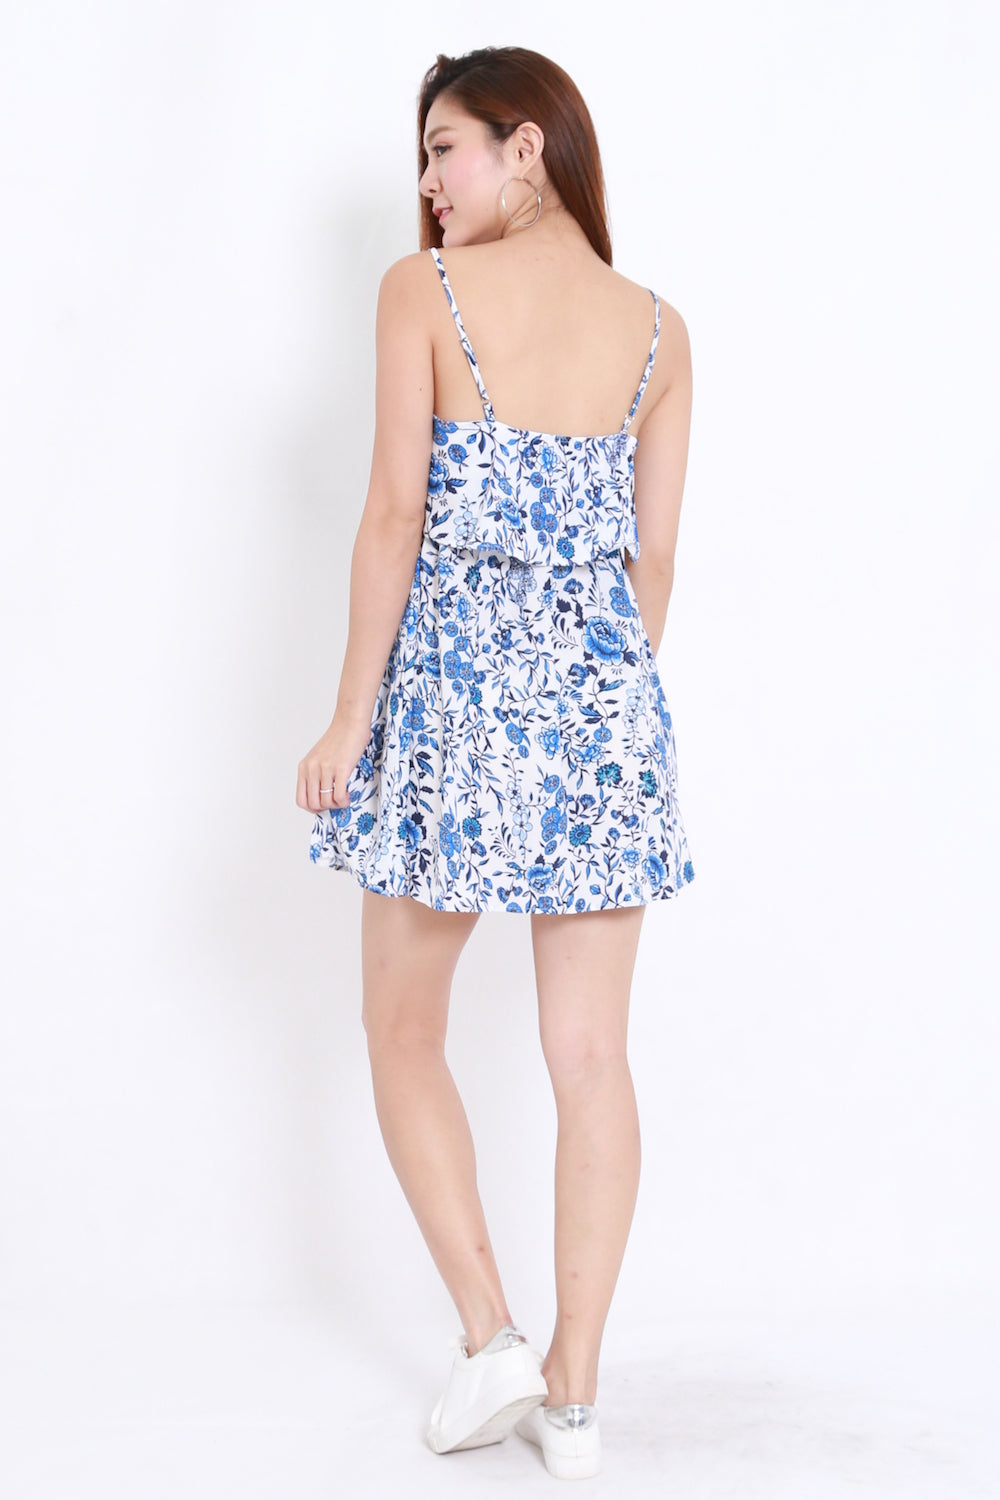 Blue Floral Spag Dress